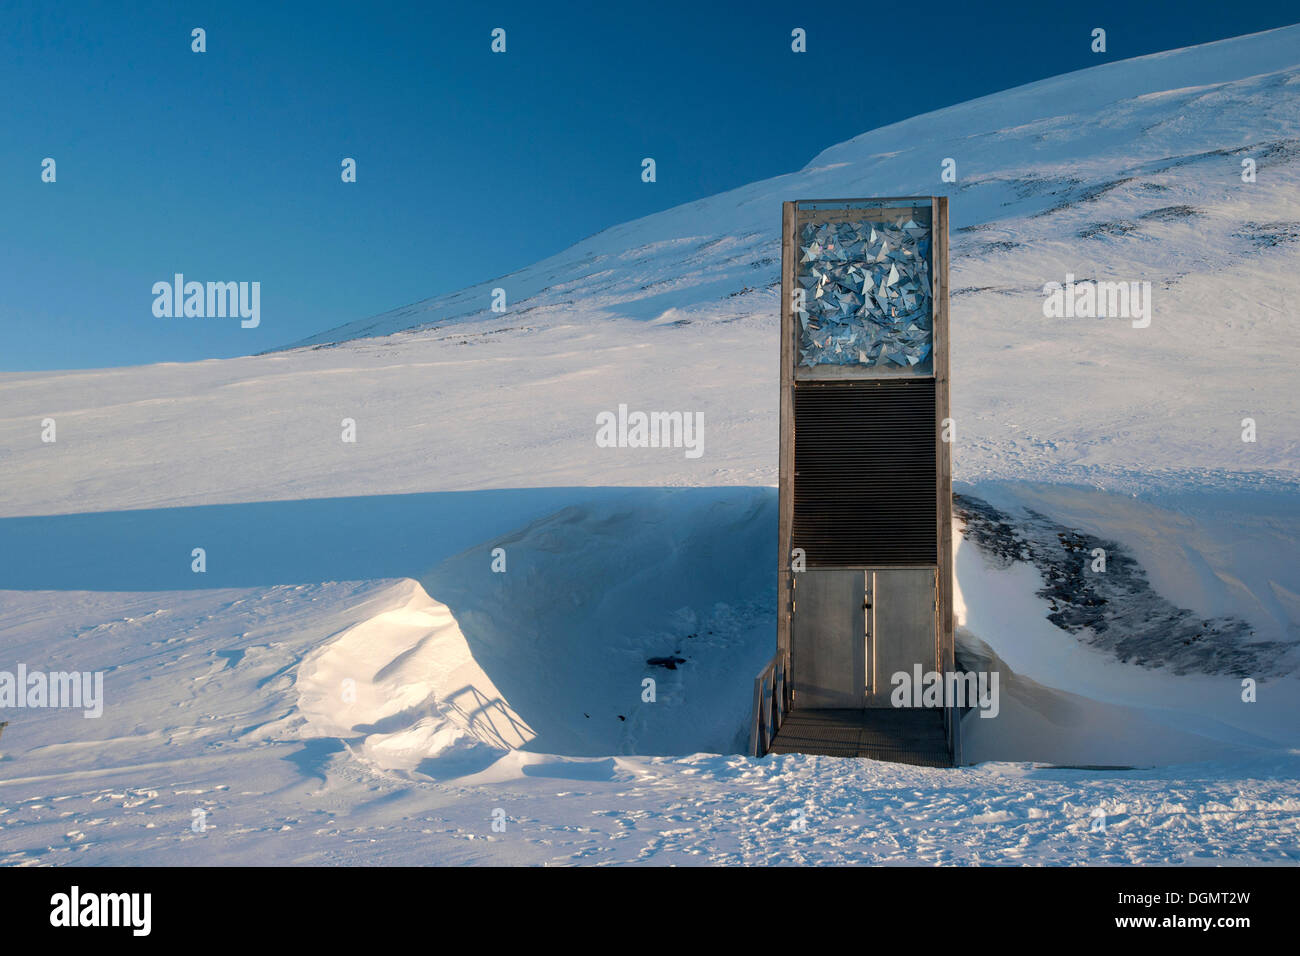 The entrance to the 'Svalbard Global Seed Vault', Longyearbyen, Spitsbergen, Svalbard, Norway, Europe - Stock Image